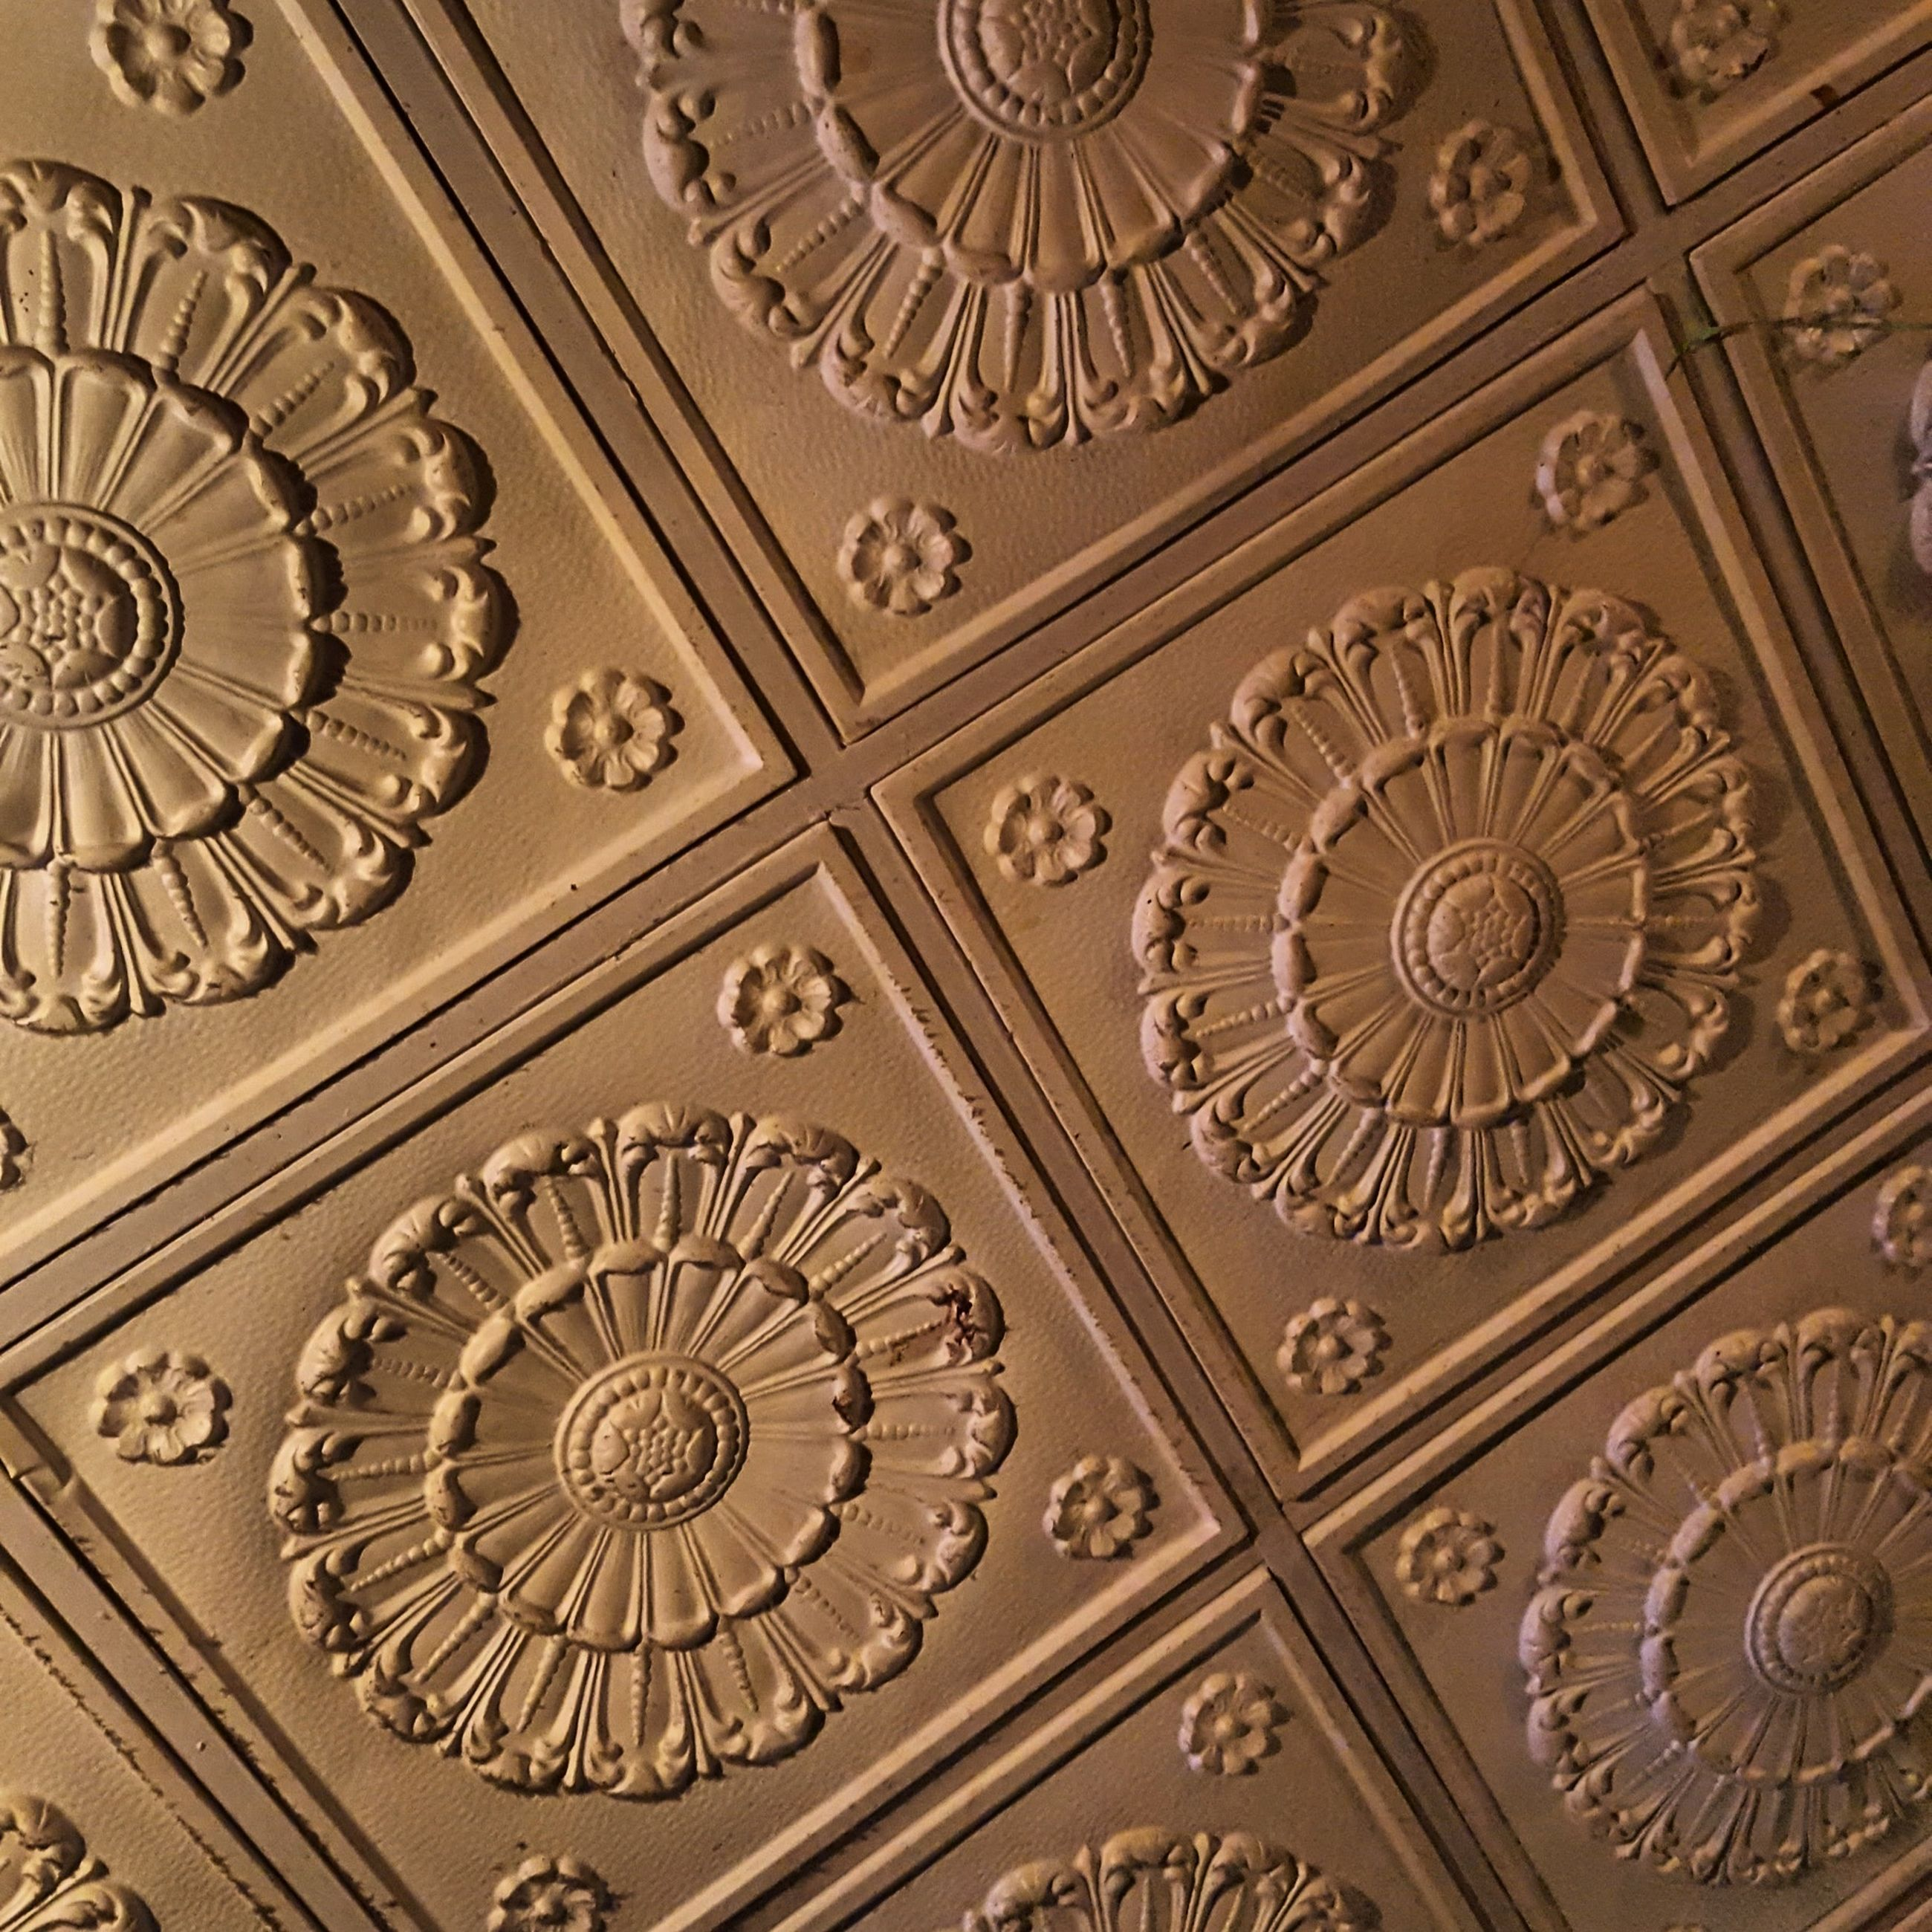 art and craft, indoors, ornate, design, art, creativity, pattern, carving - craft product, ceiling, full frame, close-up, architecture, backgrounds, gold colored, built structure, low angle view, human representation, circle, floral pattern, carving